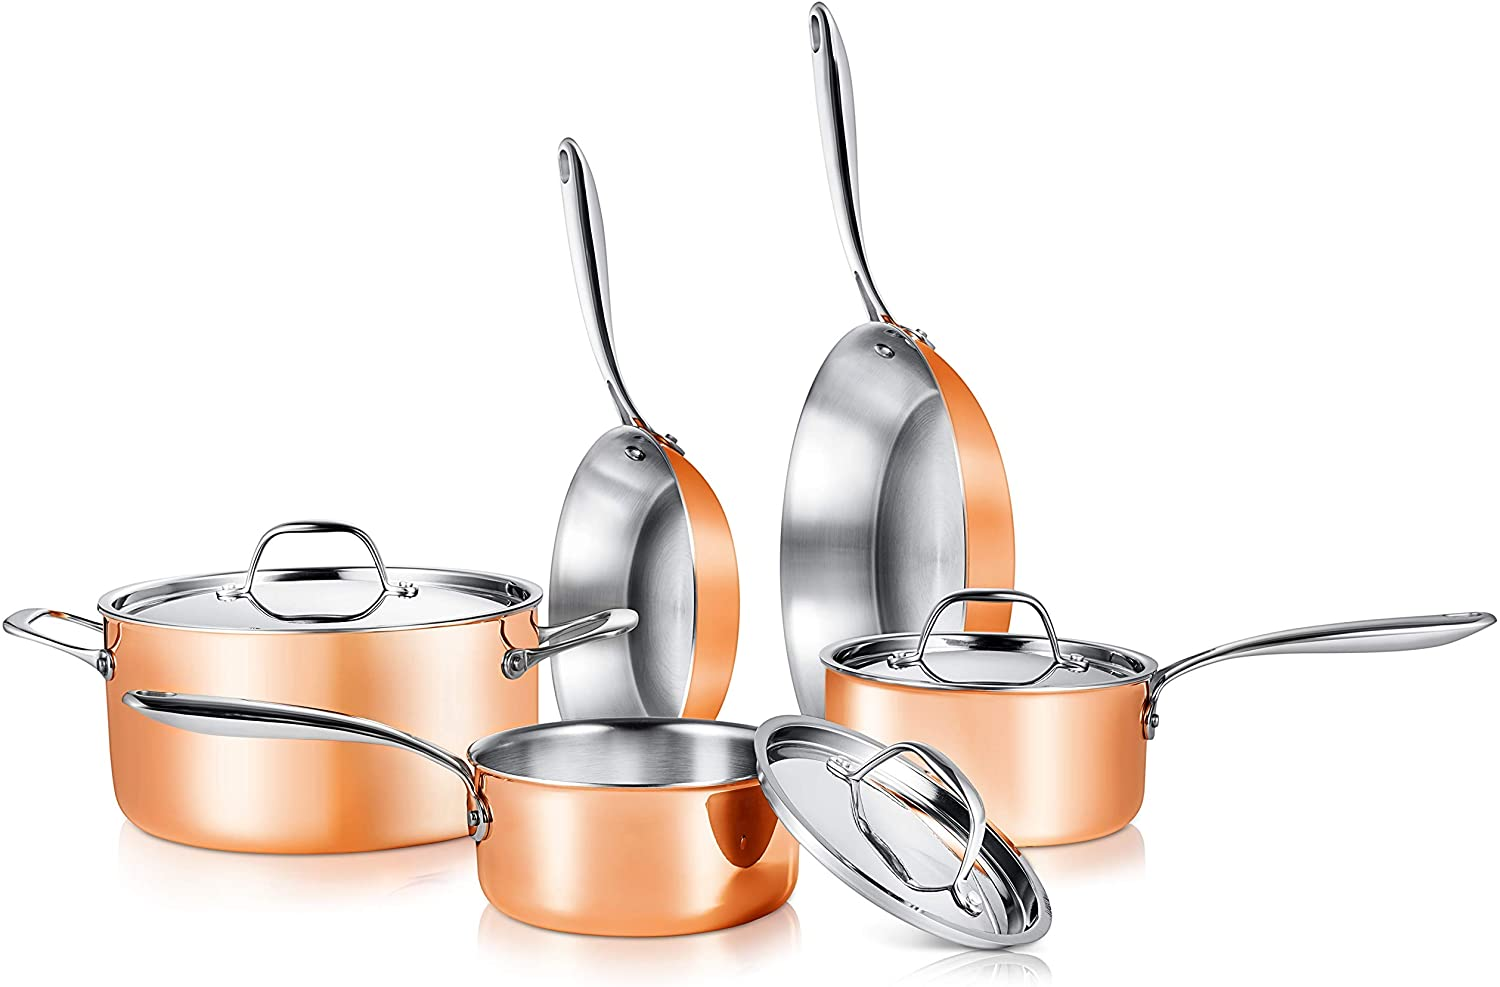 NutriChef 8-Piece Kitchenware Pots & Pans Set Stylish Kitchen Cookware with Cast Stainless Steel Handle, Tri-Ply Authentic Coppe, 8 Sizes, Copper